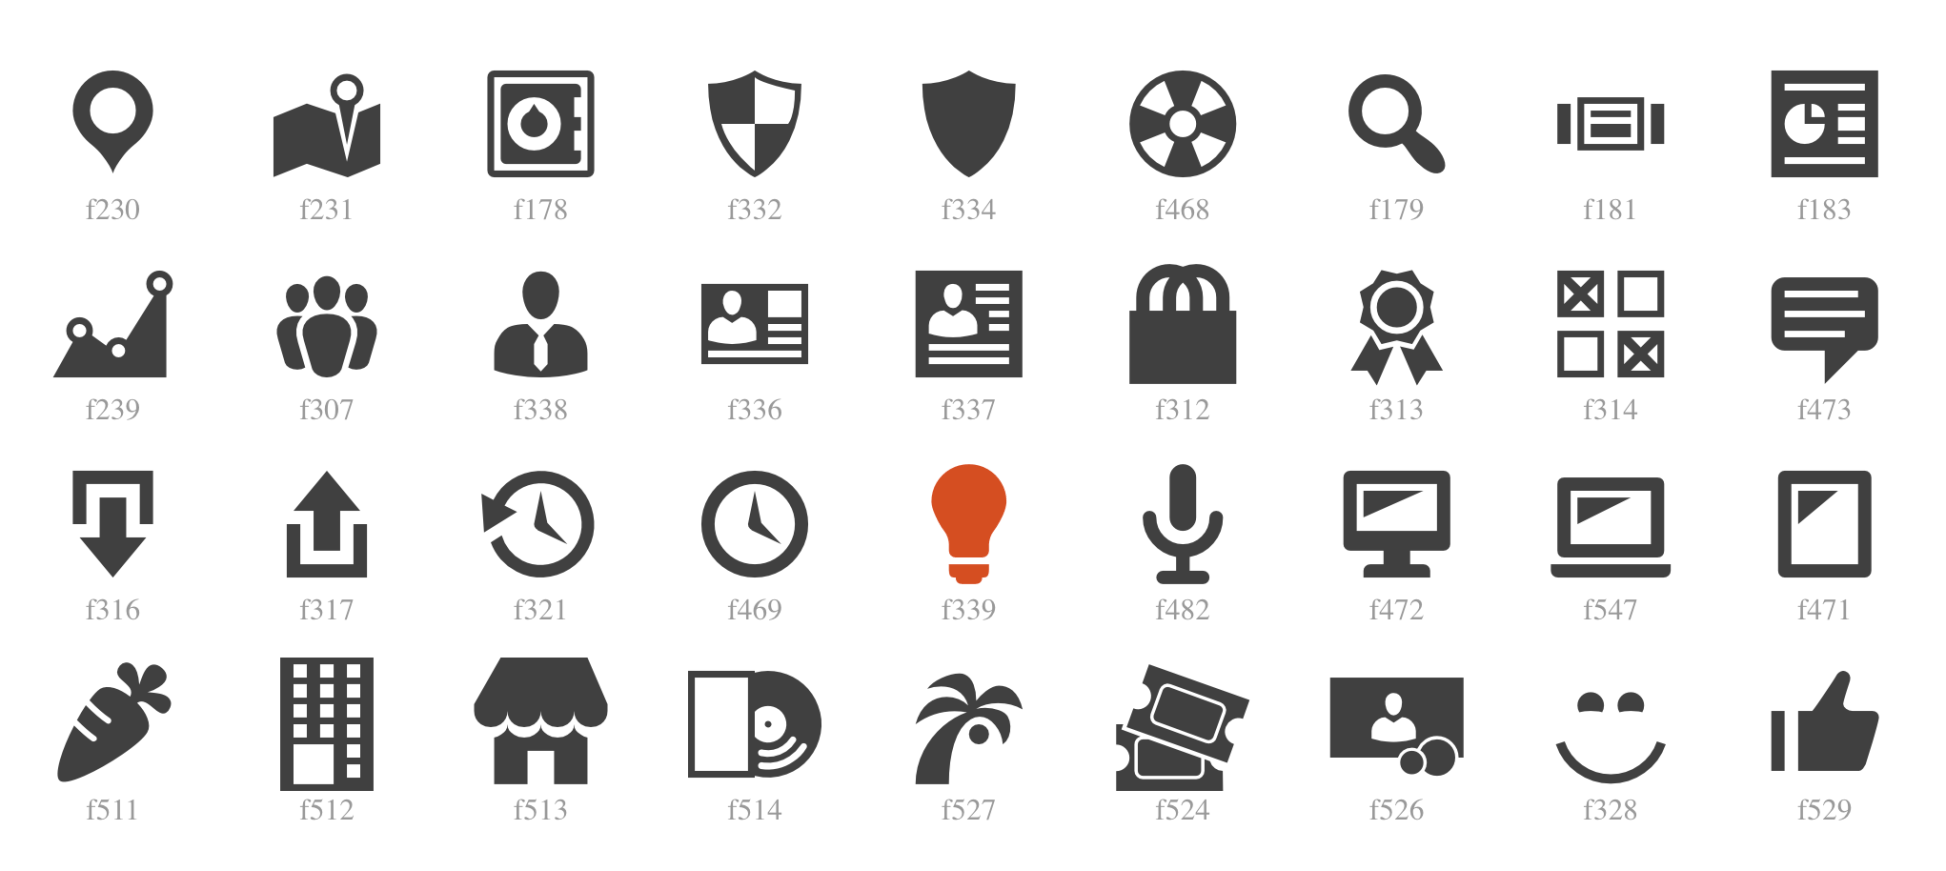 Icon fonts: Dashicons